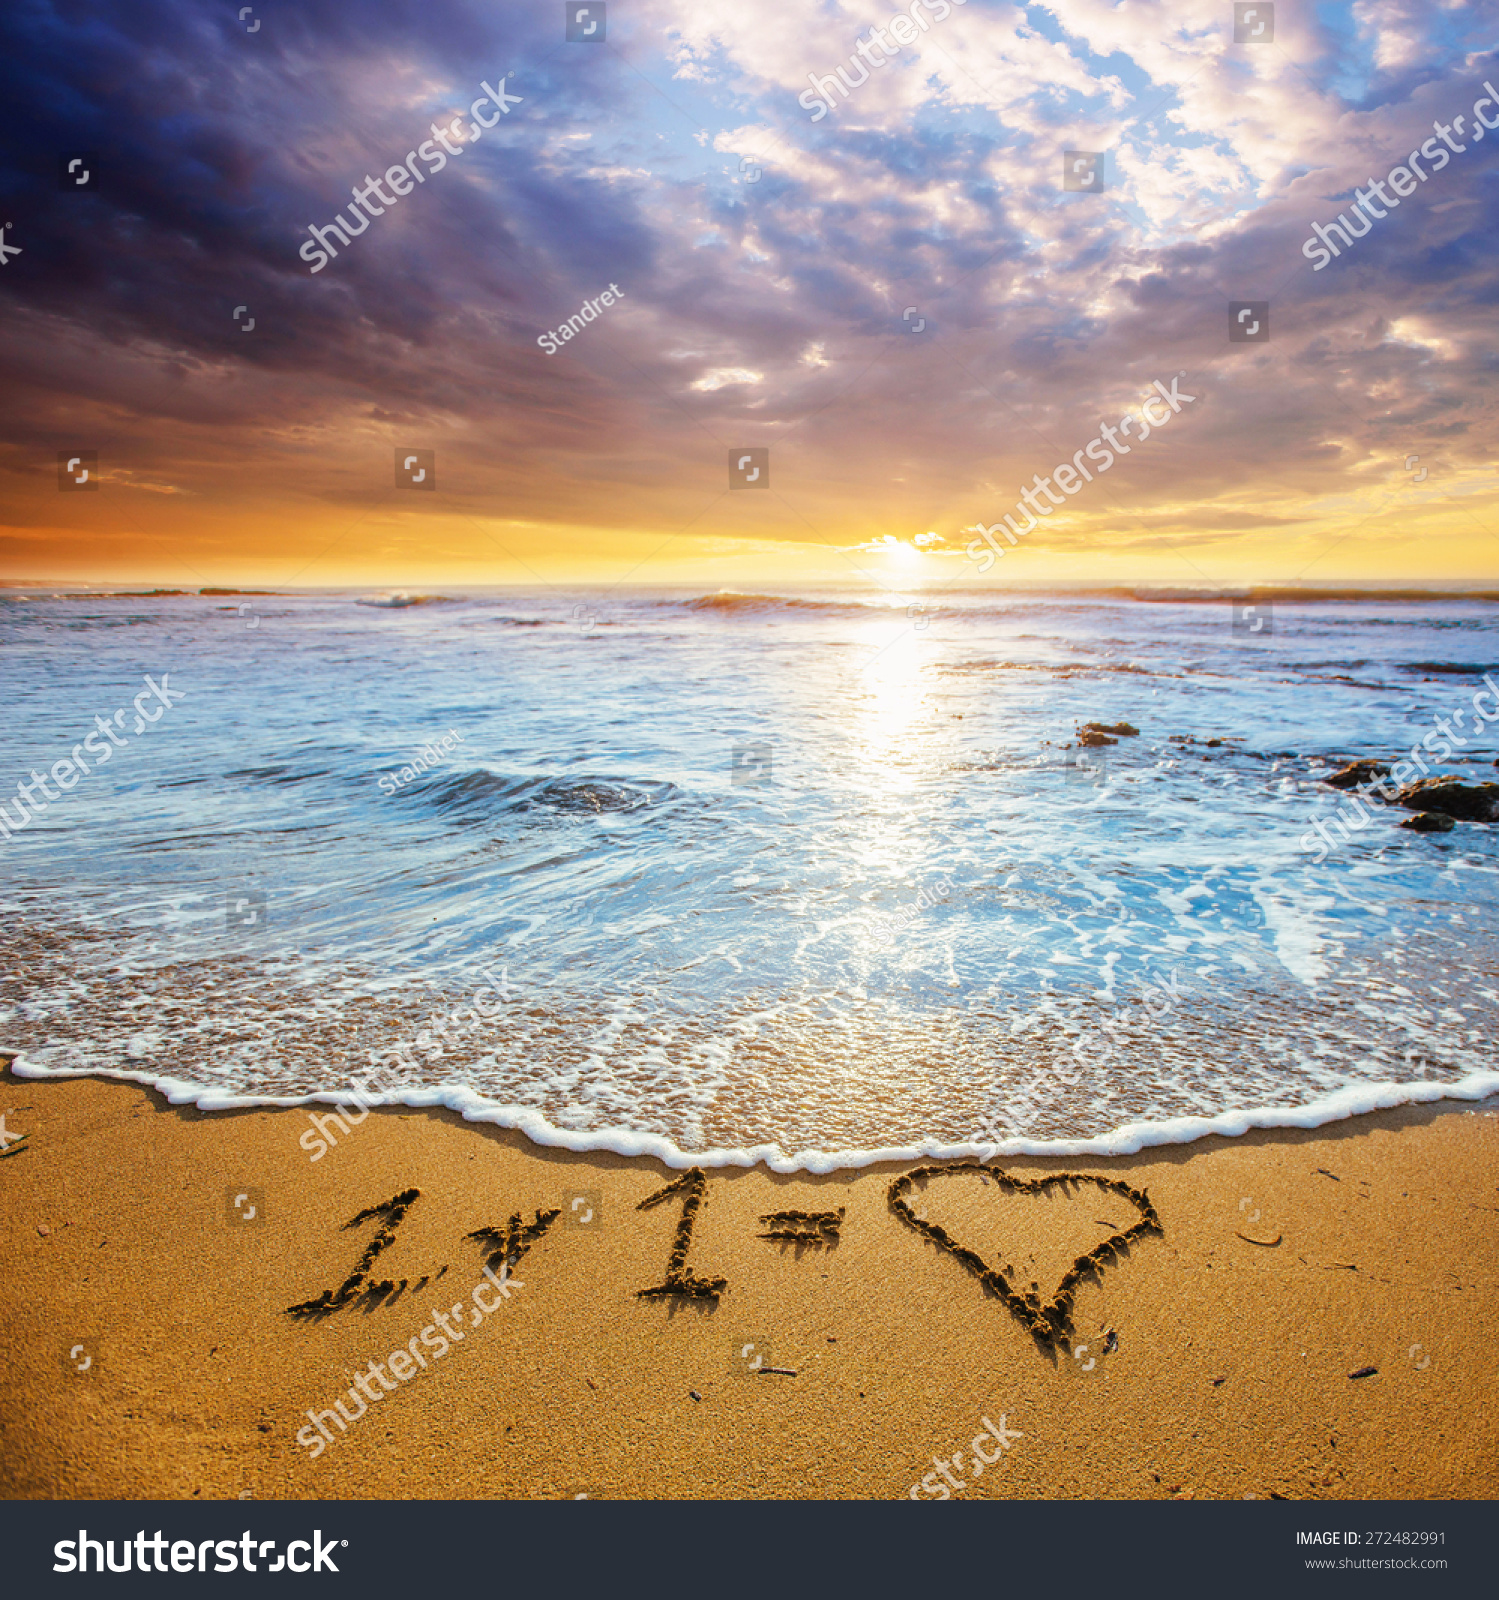 Sandy Beach: Sunset On The Sandy Beach. Stock Photo 272482991